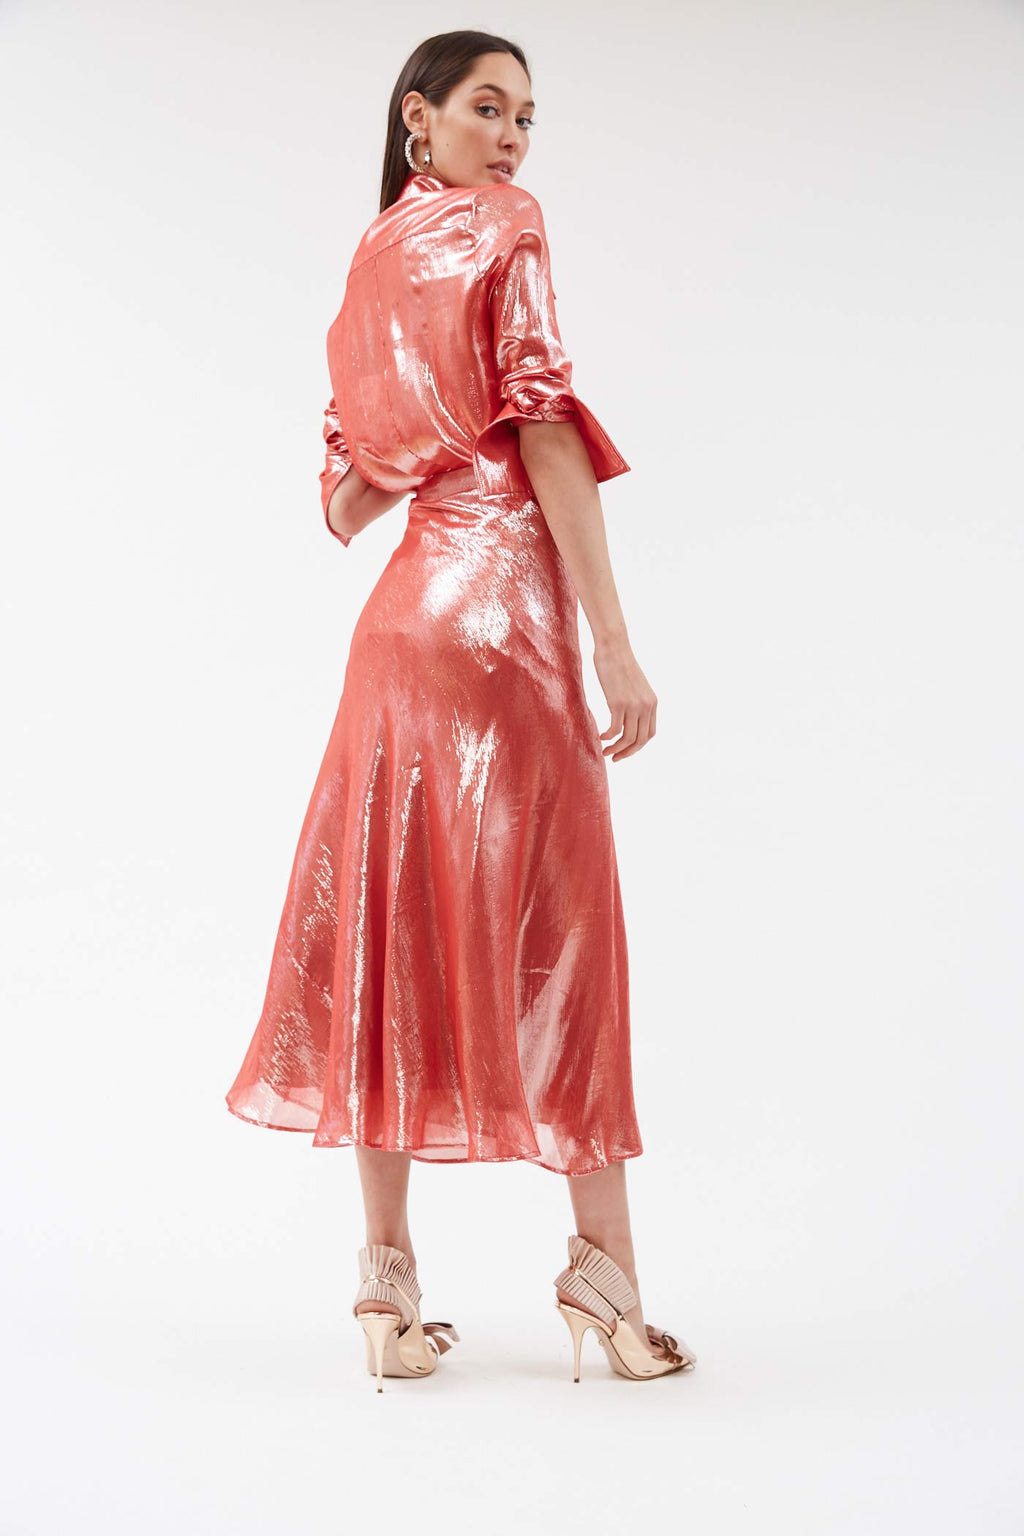 Suite Metallic Skirt